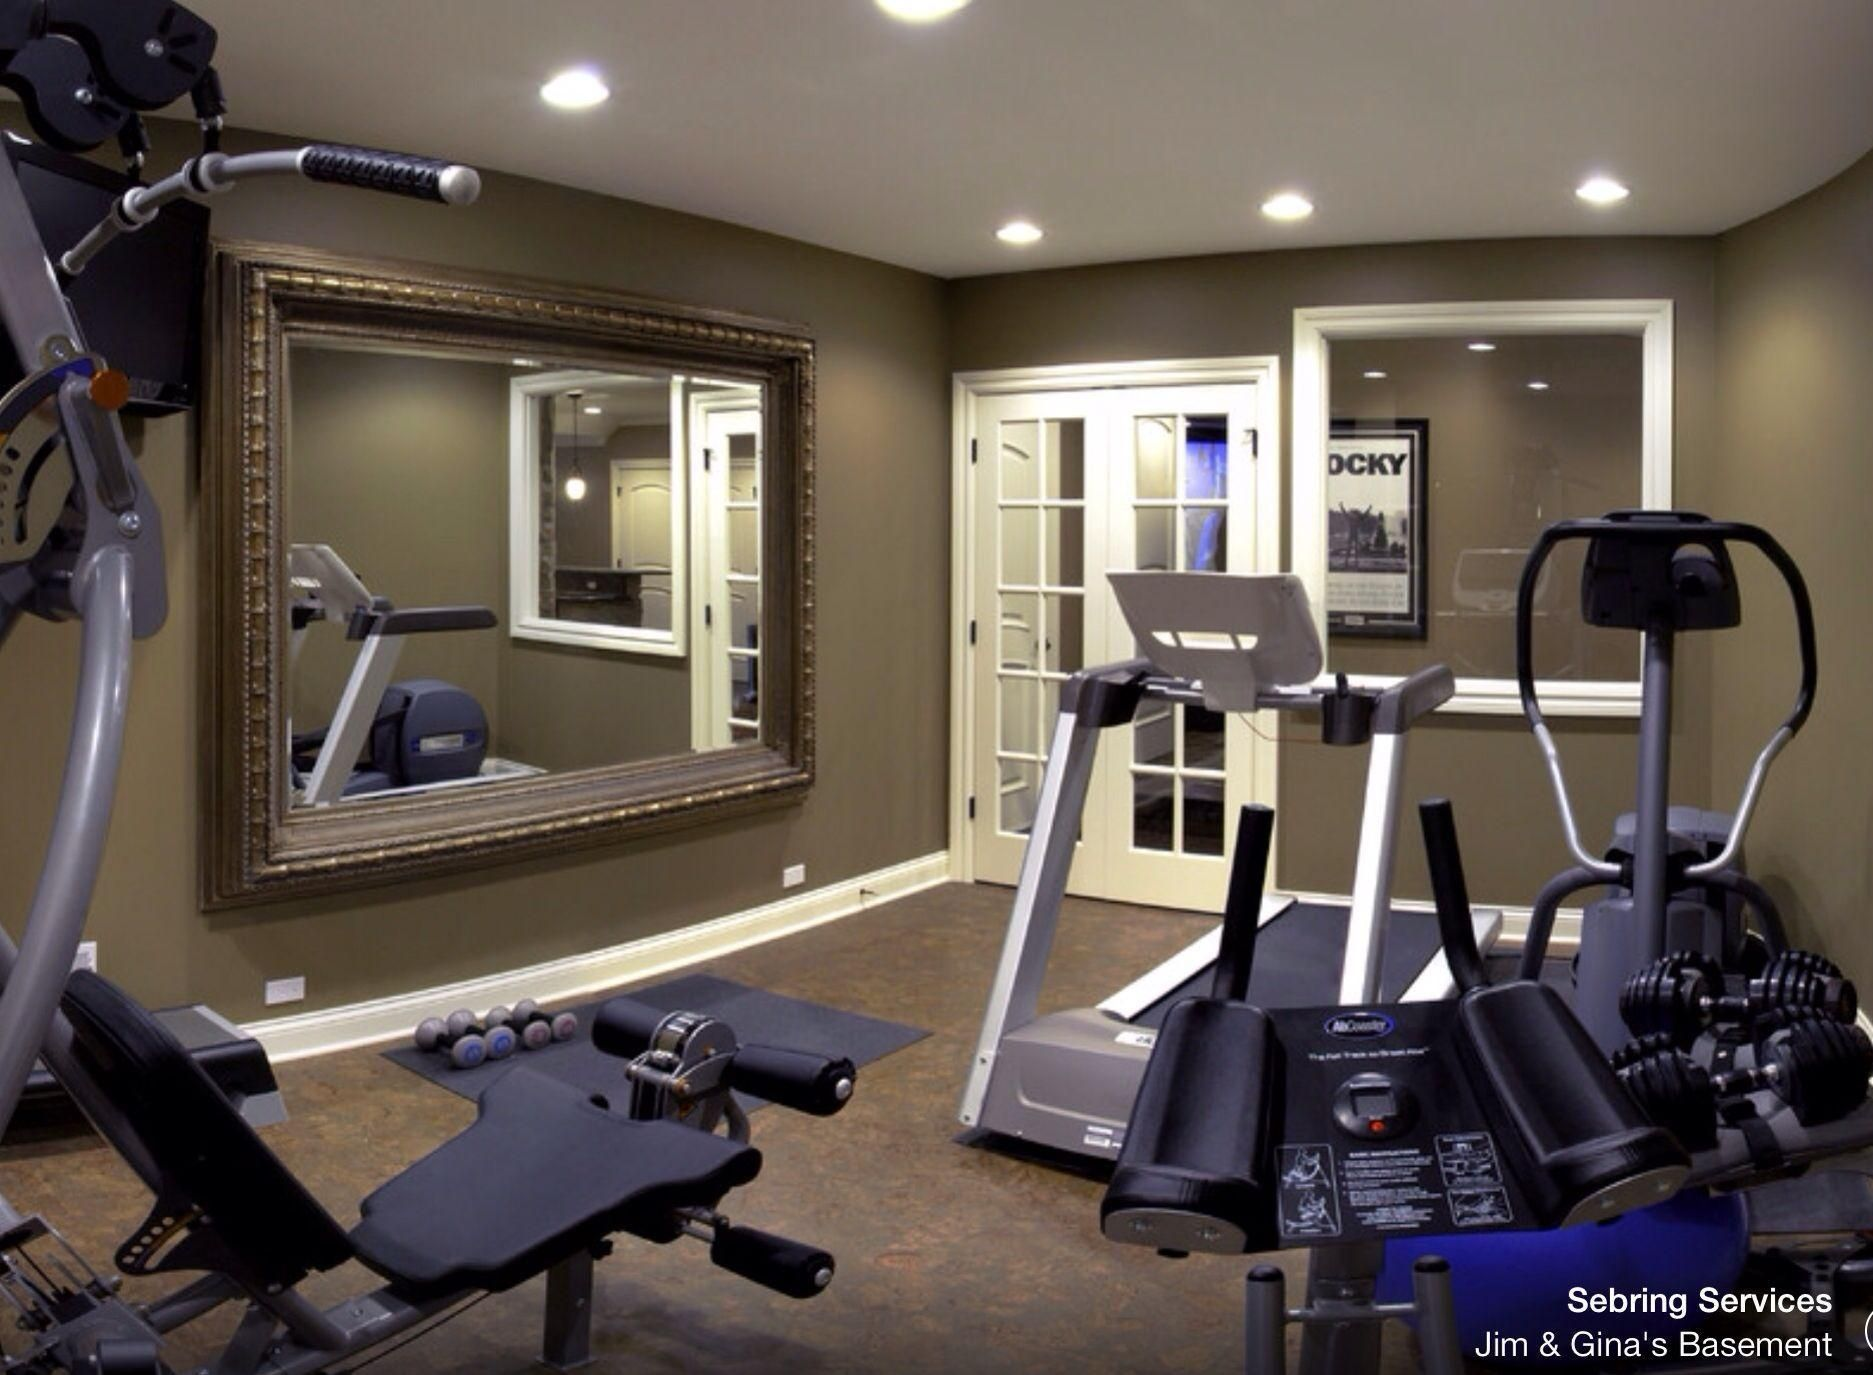 Elegant home gym ideas basement delightful in order to my website